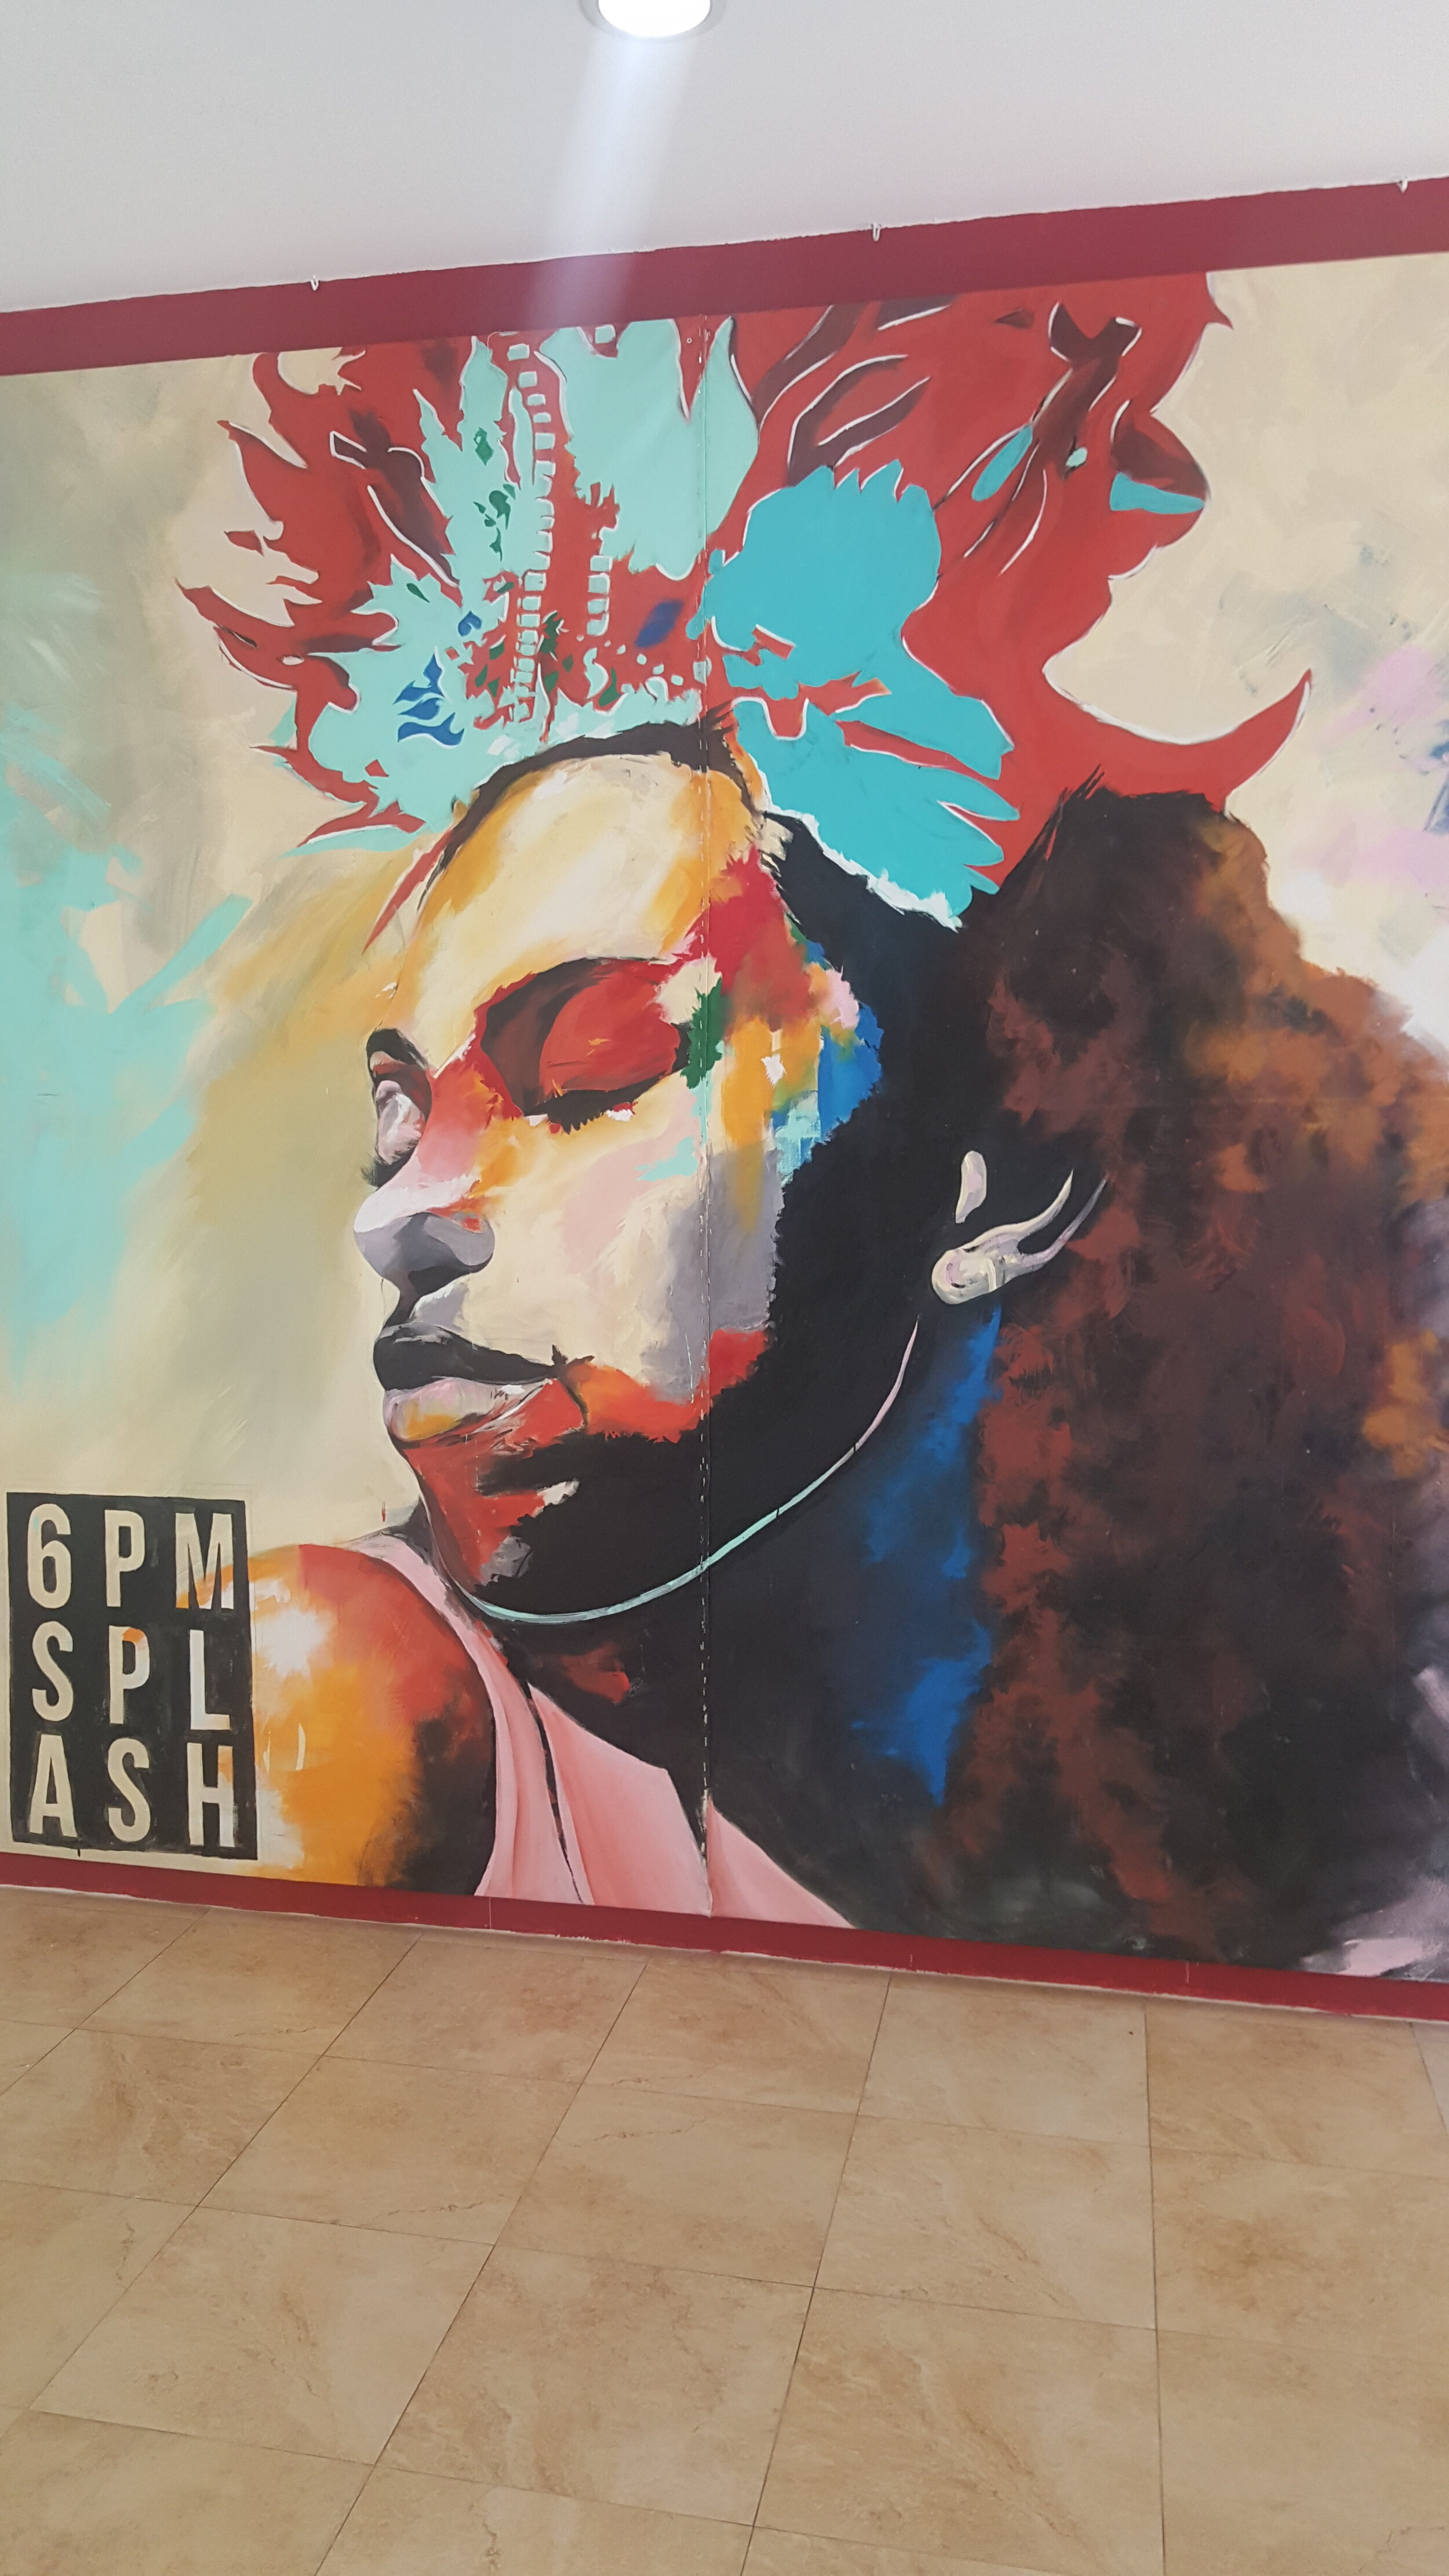 Find me at the Spiritual Wellness Zone at the Caribbean Wellness Day, in front of this beautiful mural (Ground floor, opposite Rainbow Boutique)